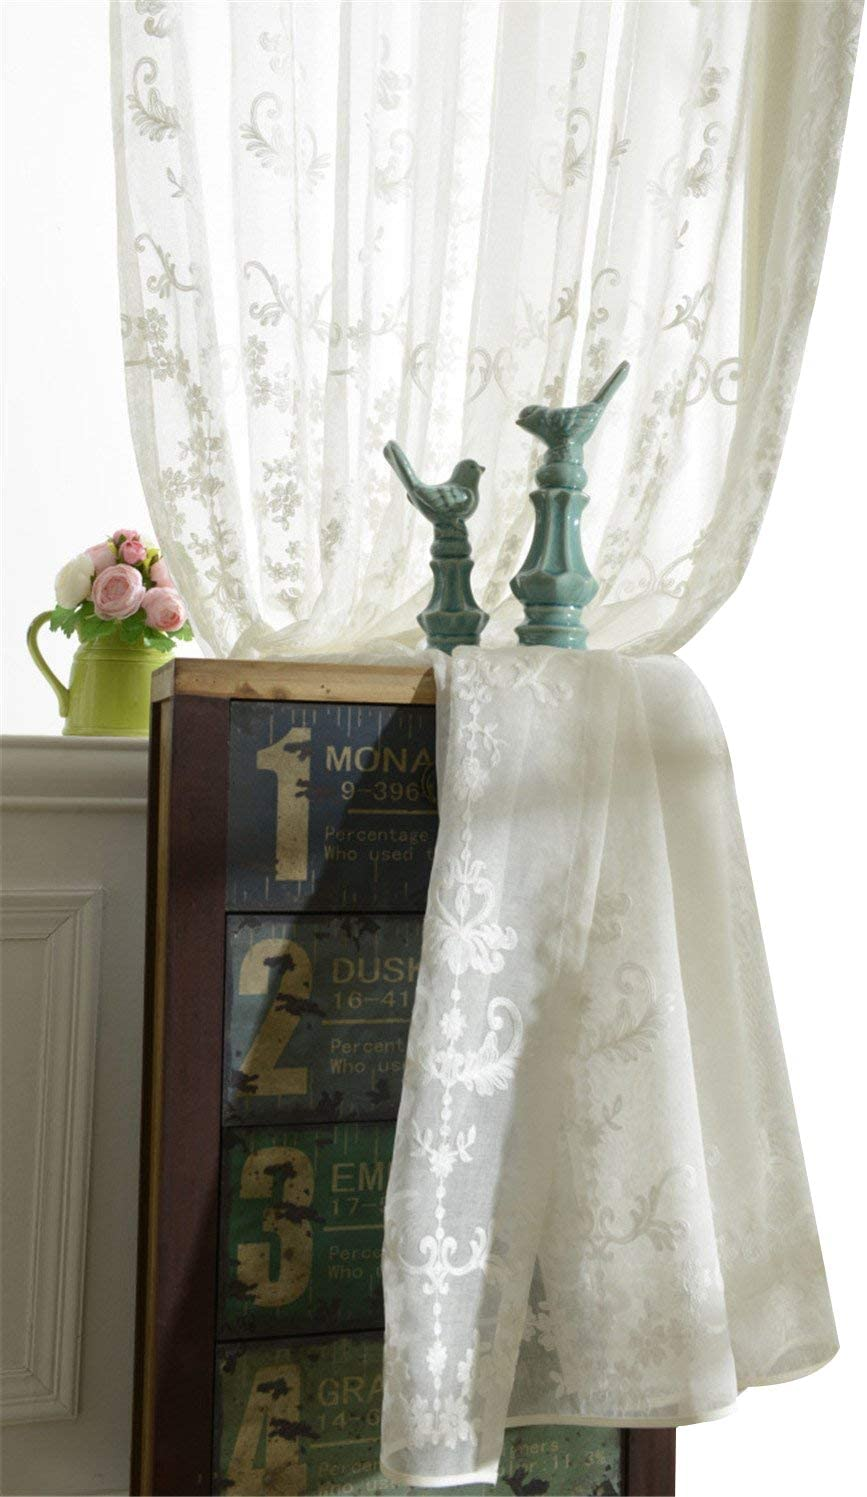 Lace Voile Curtain Panel Embroidery Pelmets Adorn White Divider French Country